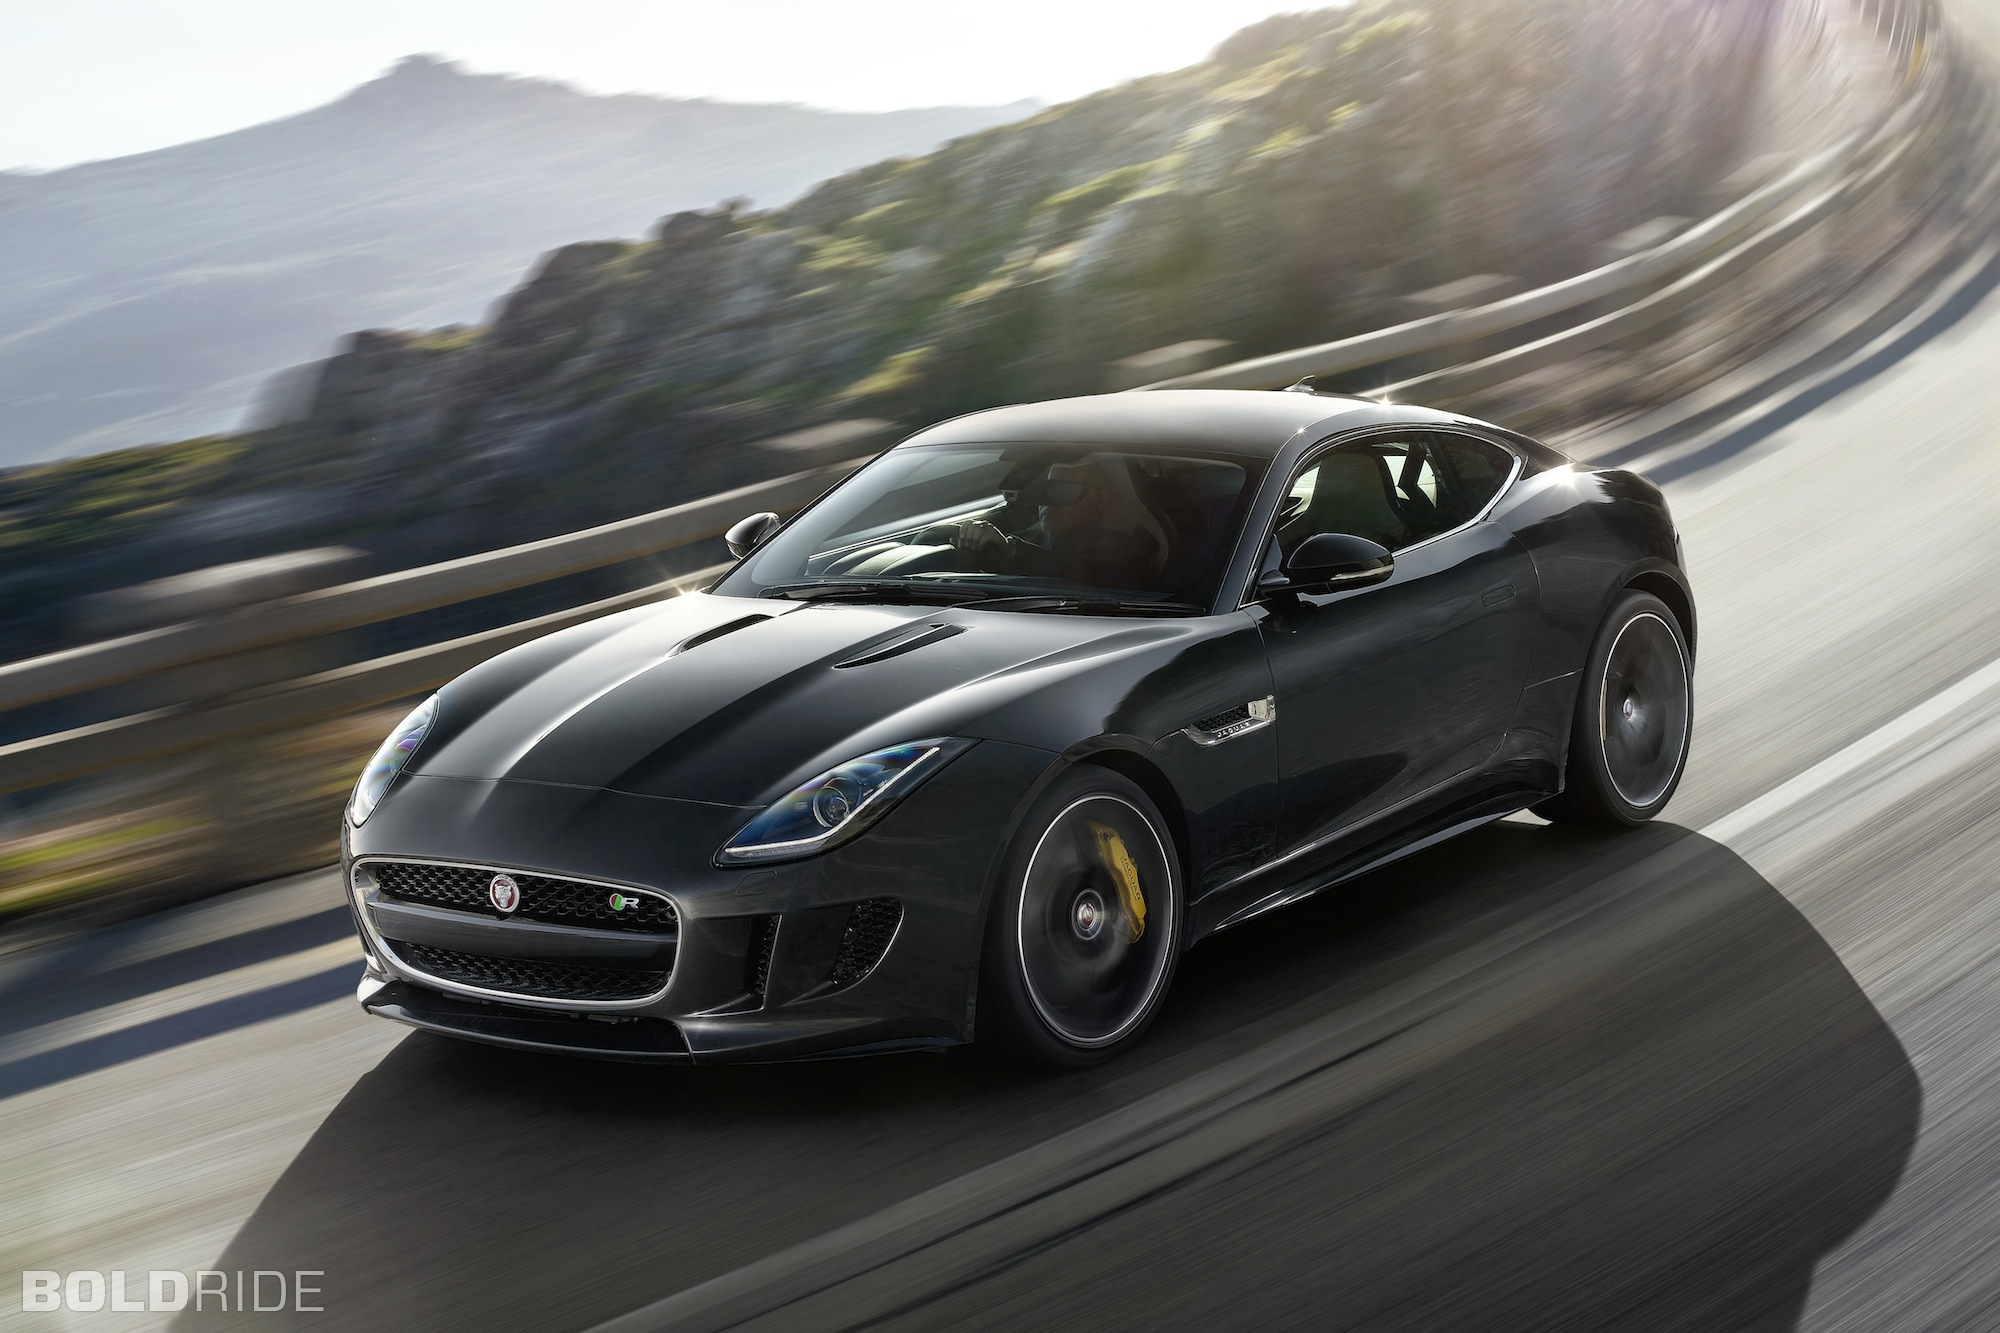 2015 Jaguar F-Type Coupe 1600 x 1200